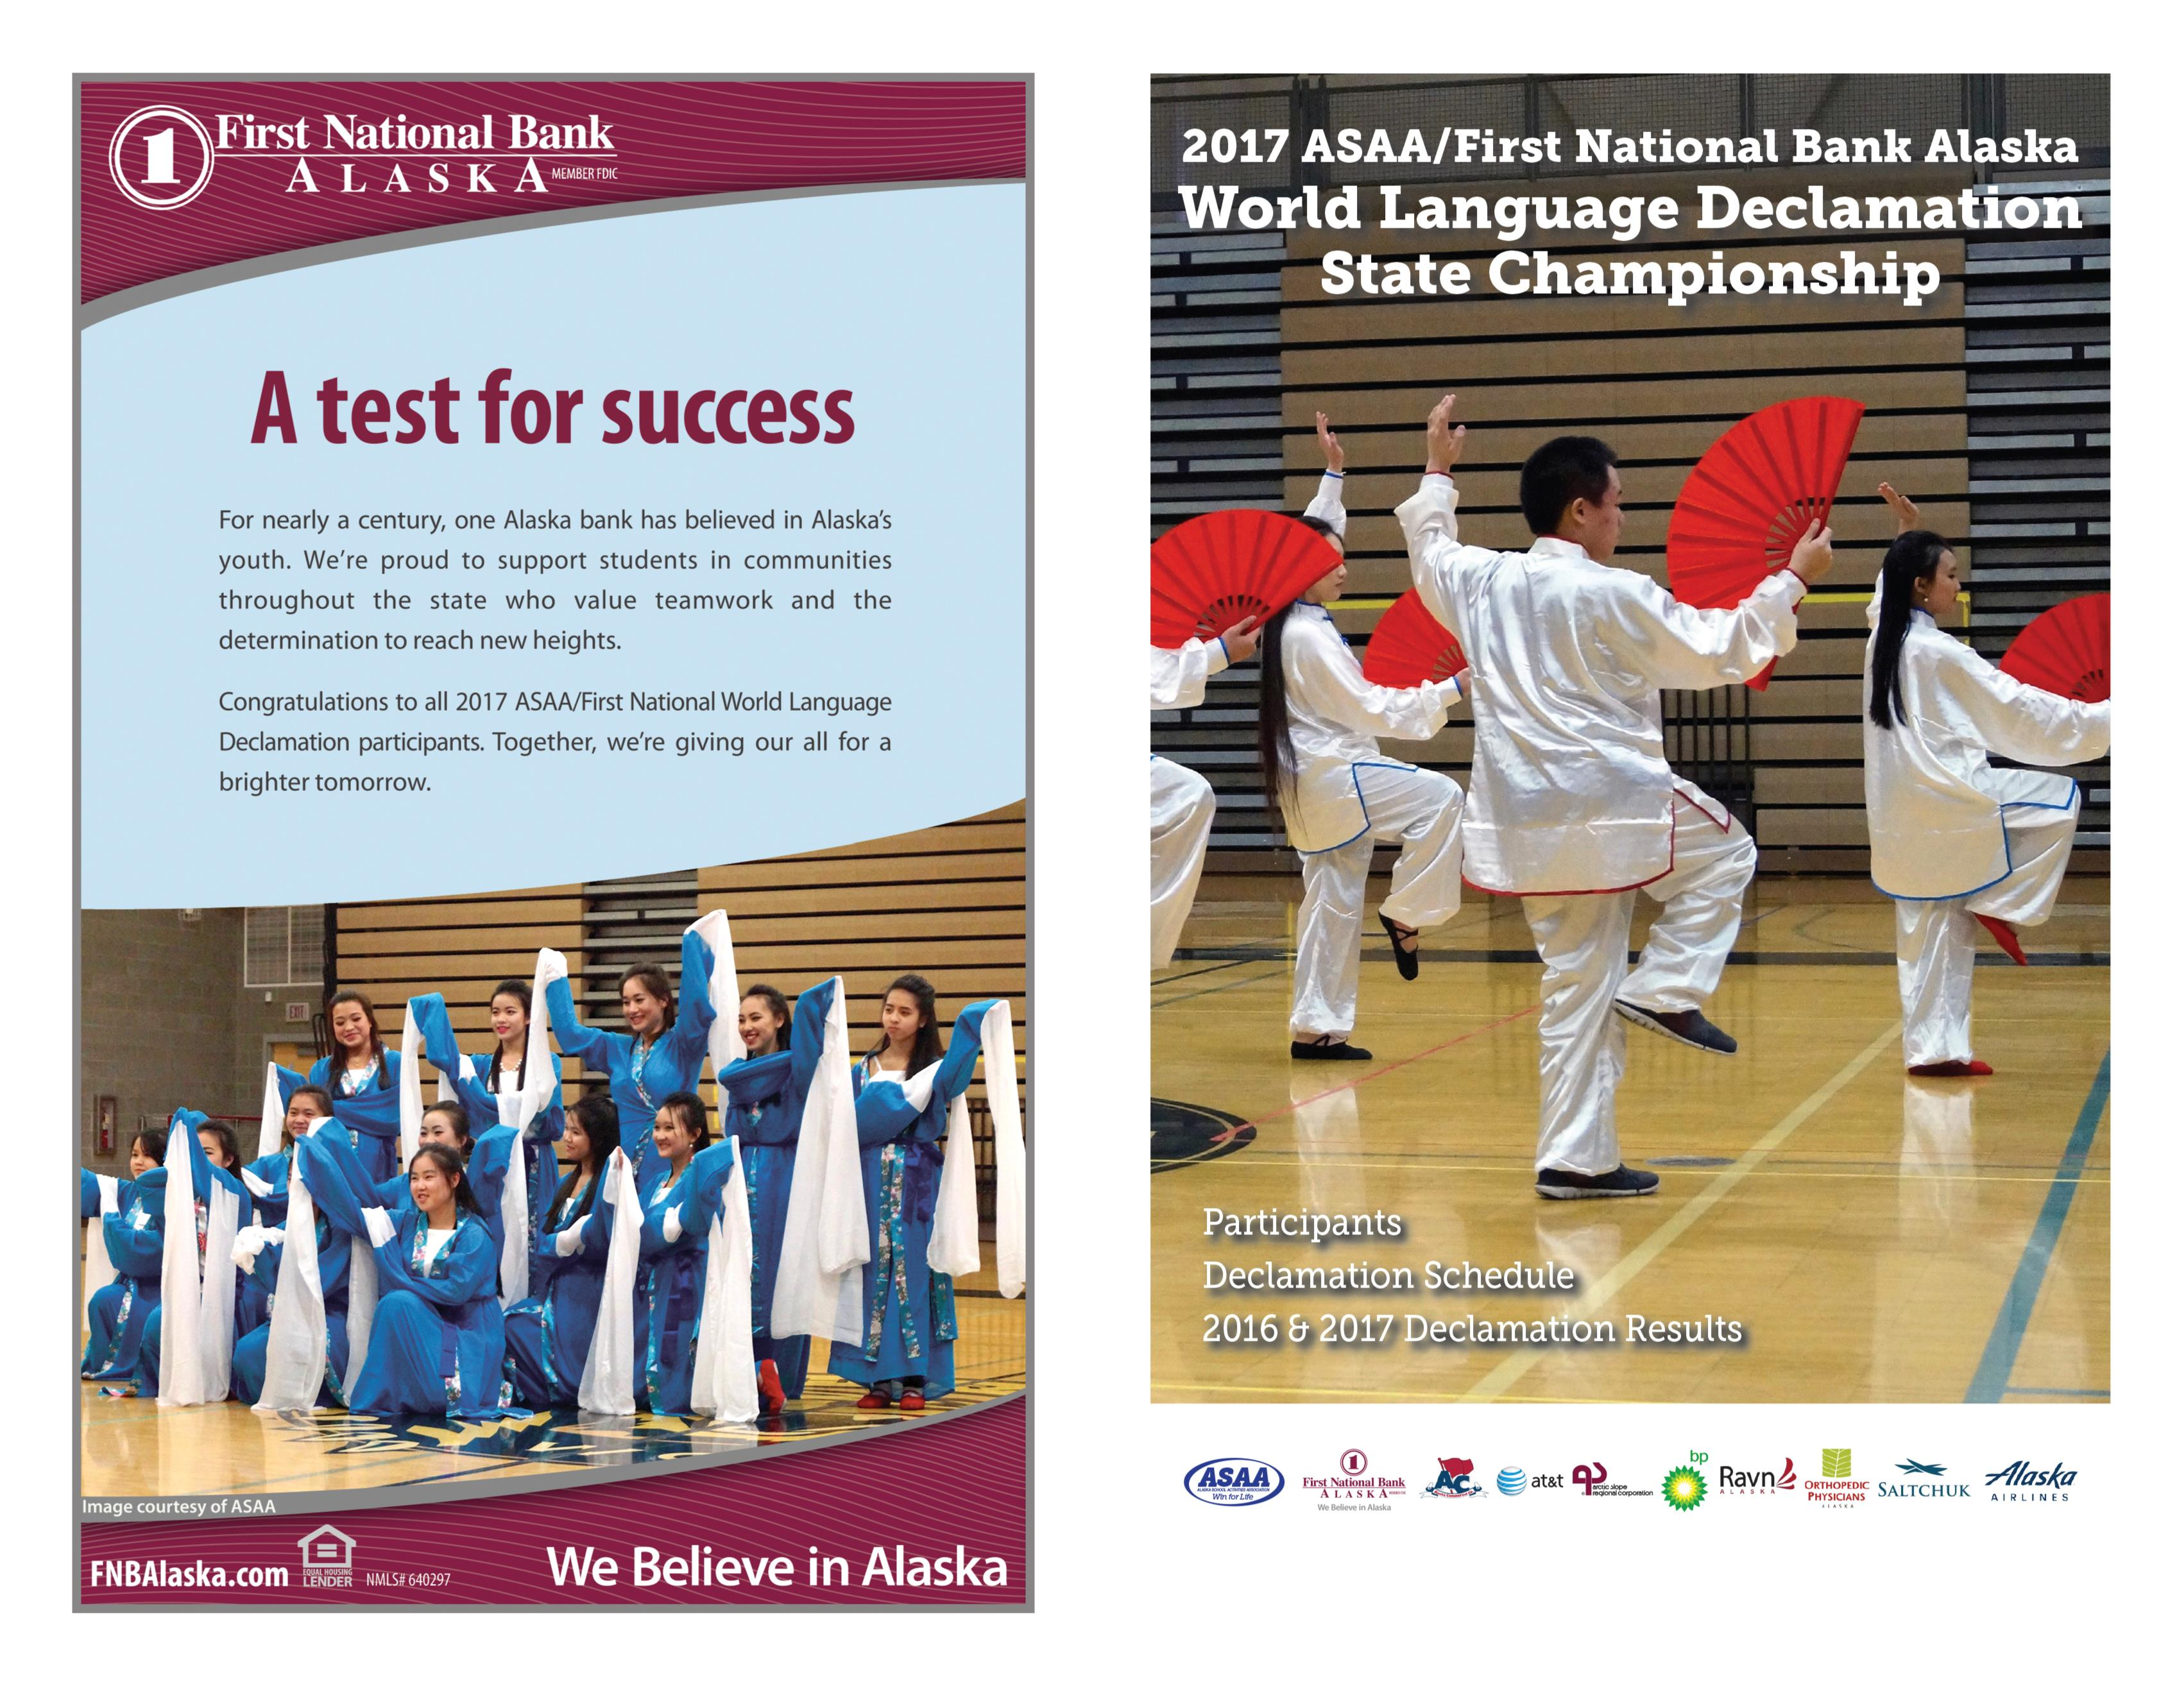 2017 ASAA/First National Bank Alaska World Language Declamation Program cover image